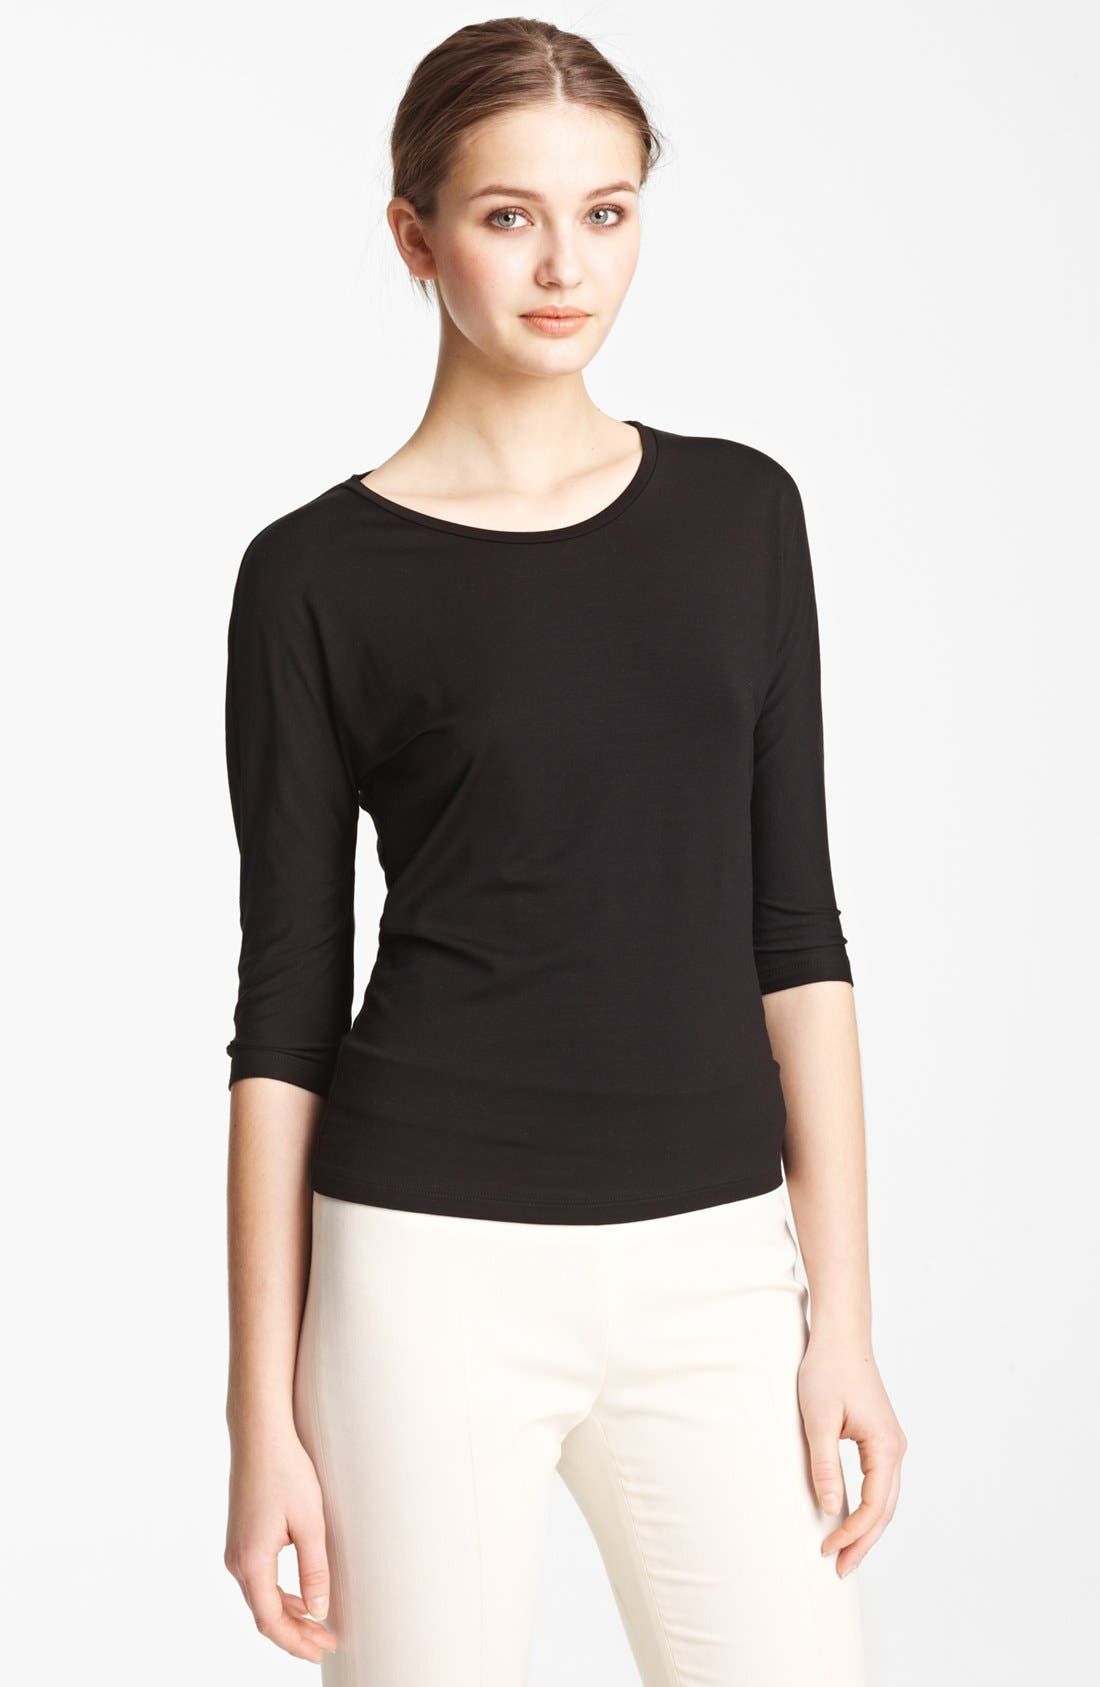 Main Image - Max Mara 'Circe' Scoop Neck Jersey Tee